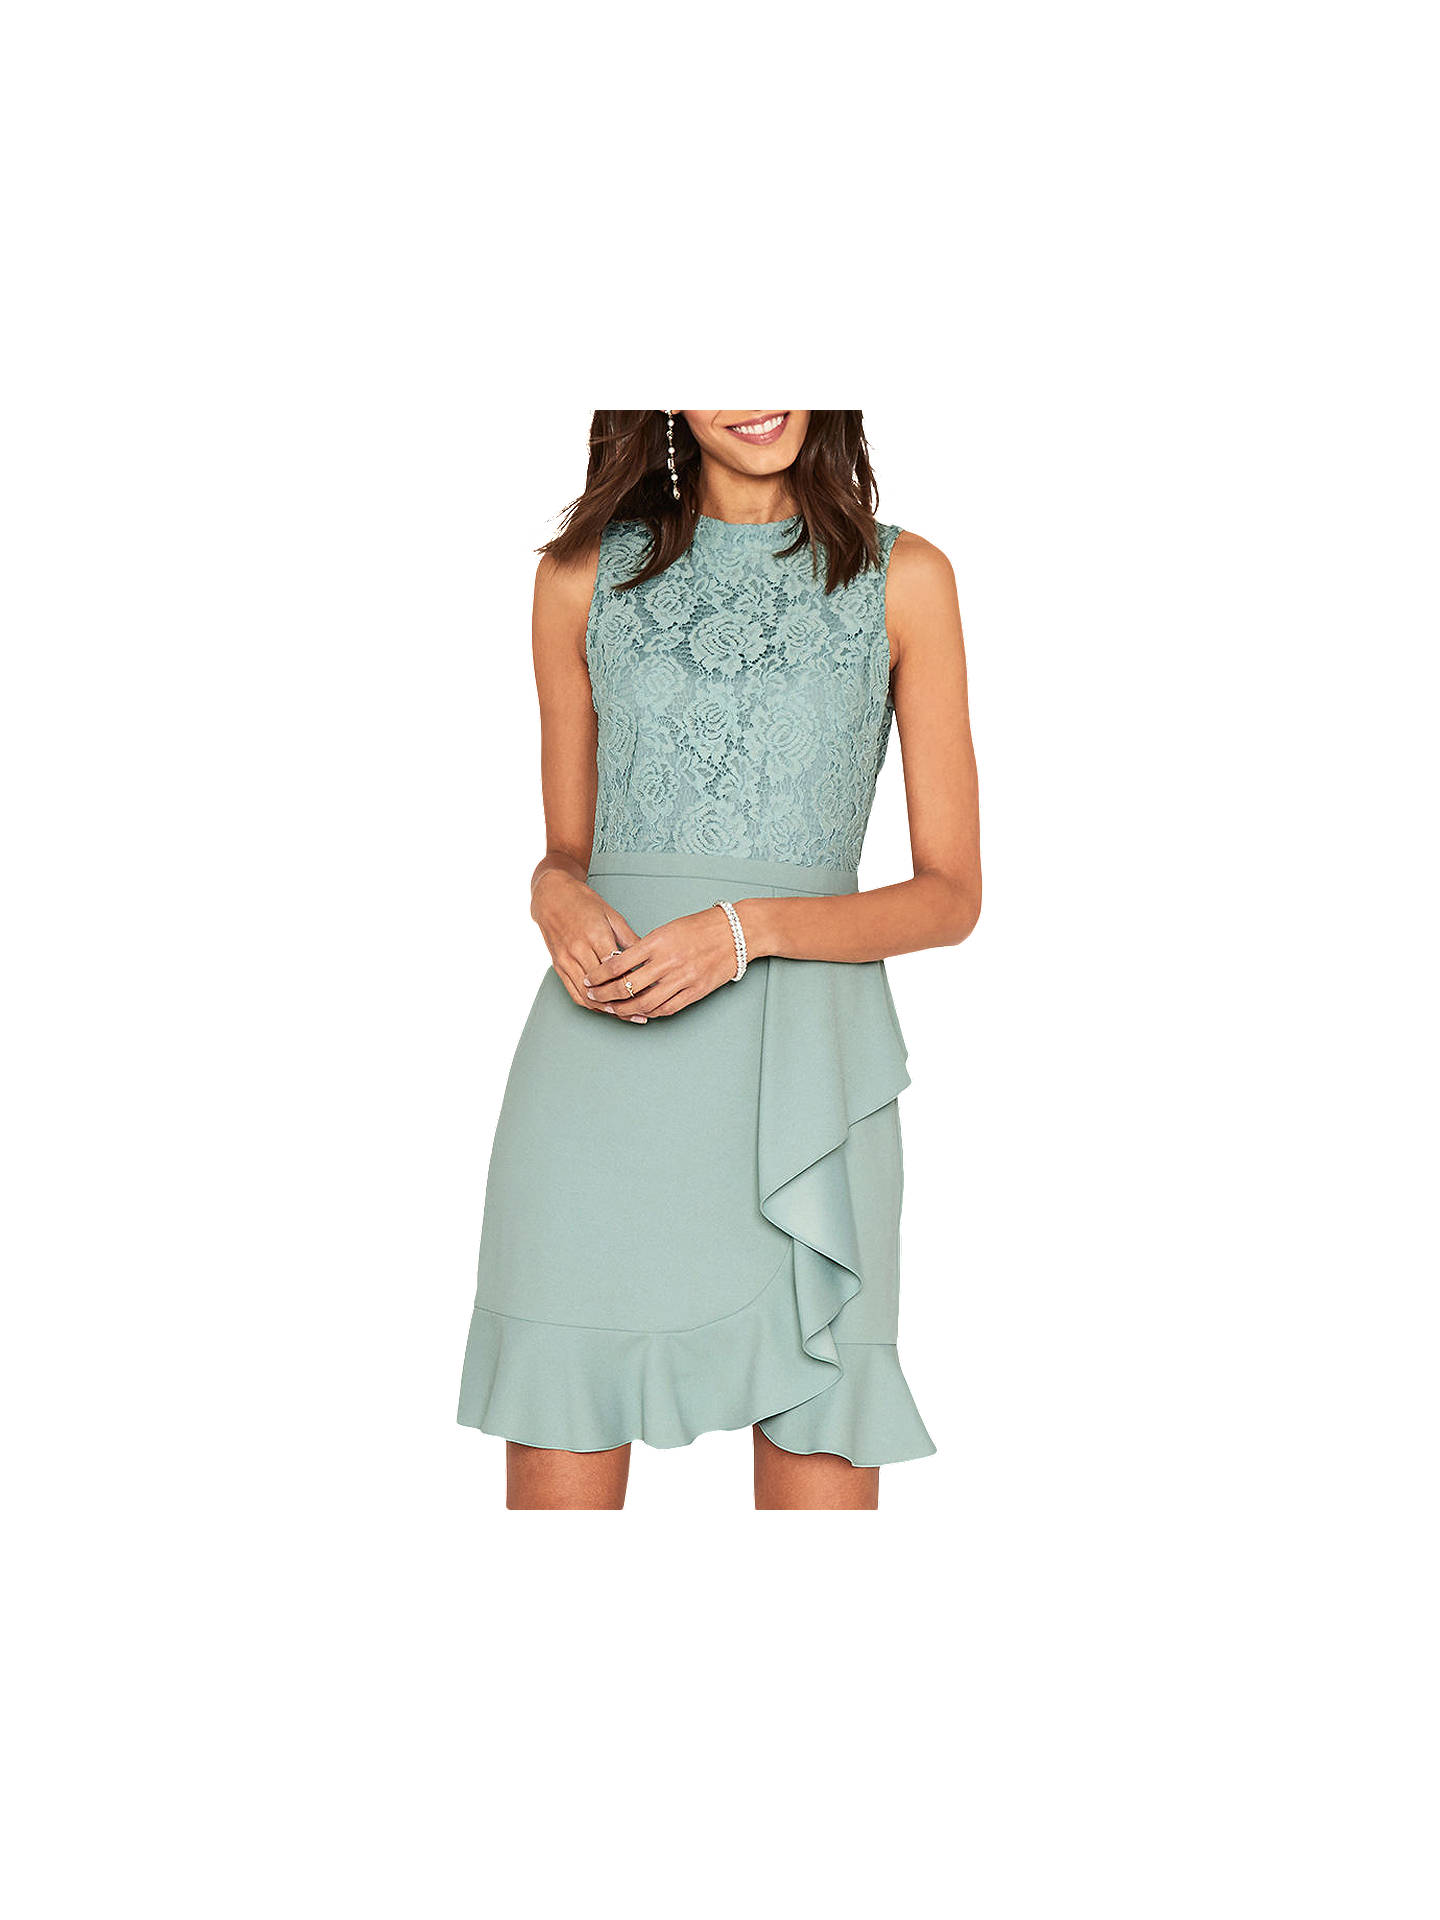 428ccb34829a Buy Oasis Lace Skater Dress, Teal, 6 Online at johnlewis.com ...